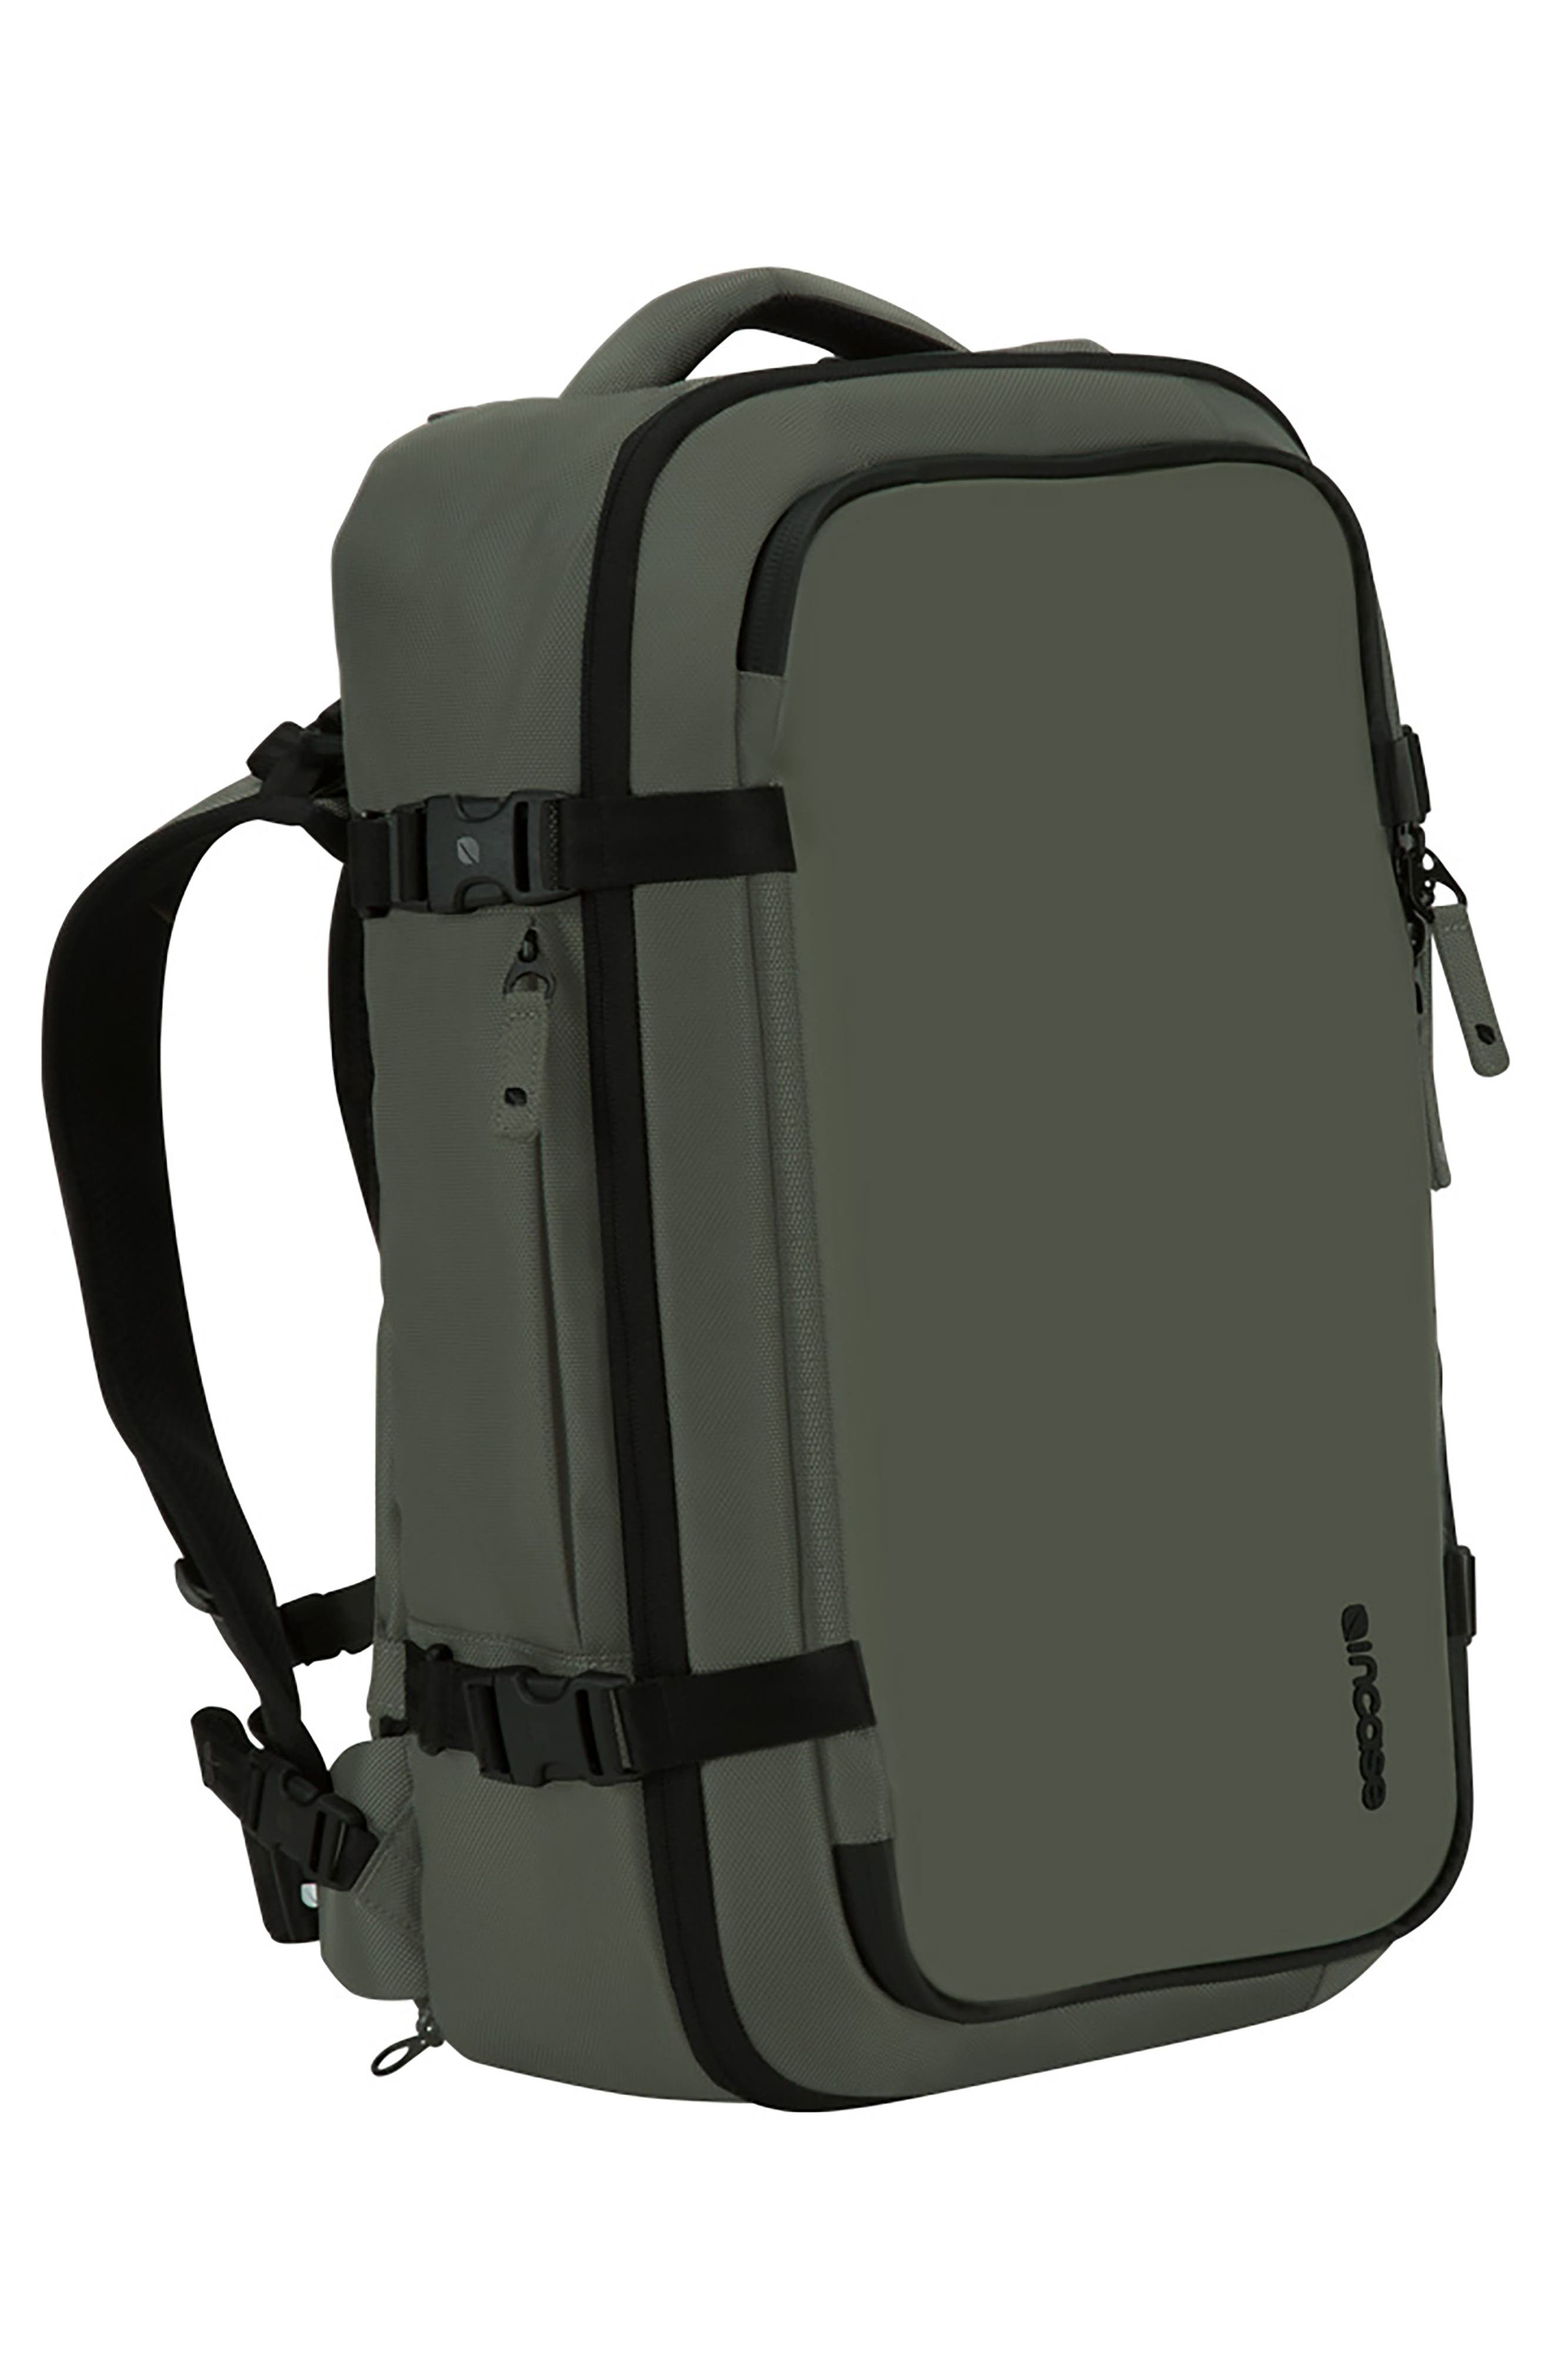 TRACTO Convertible Backpack,                             Alternate thumbnail 3, color,                             Anthracite